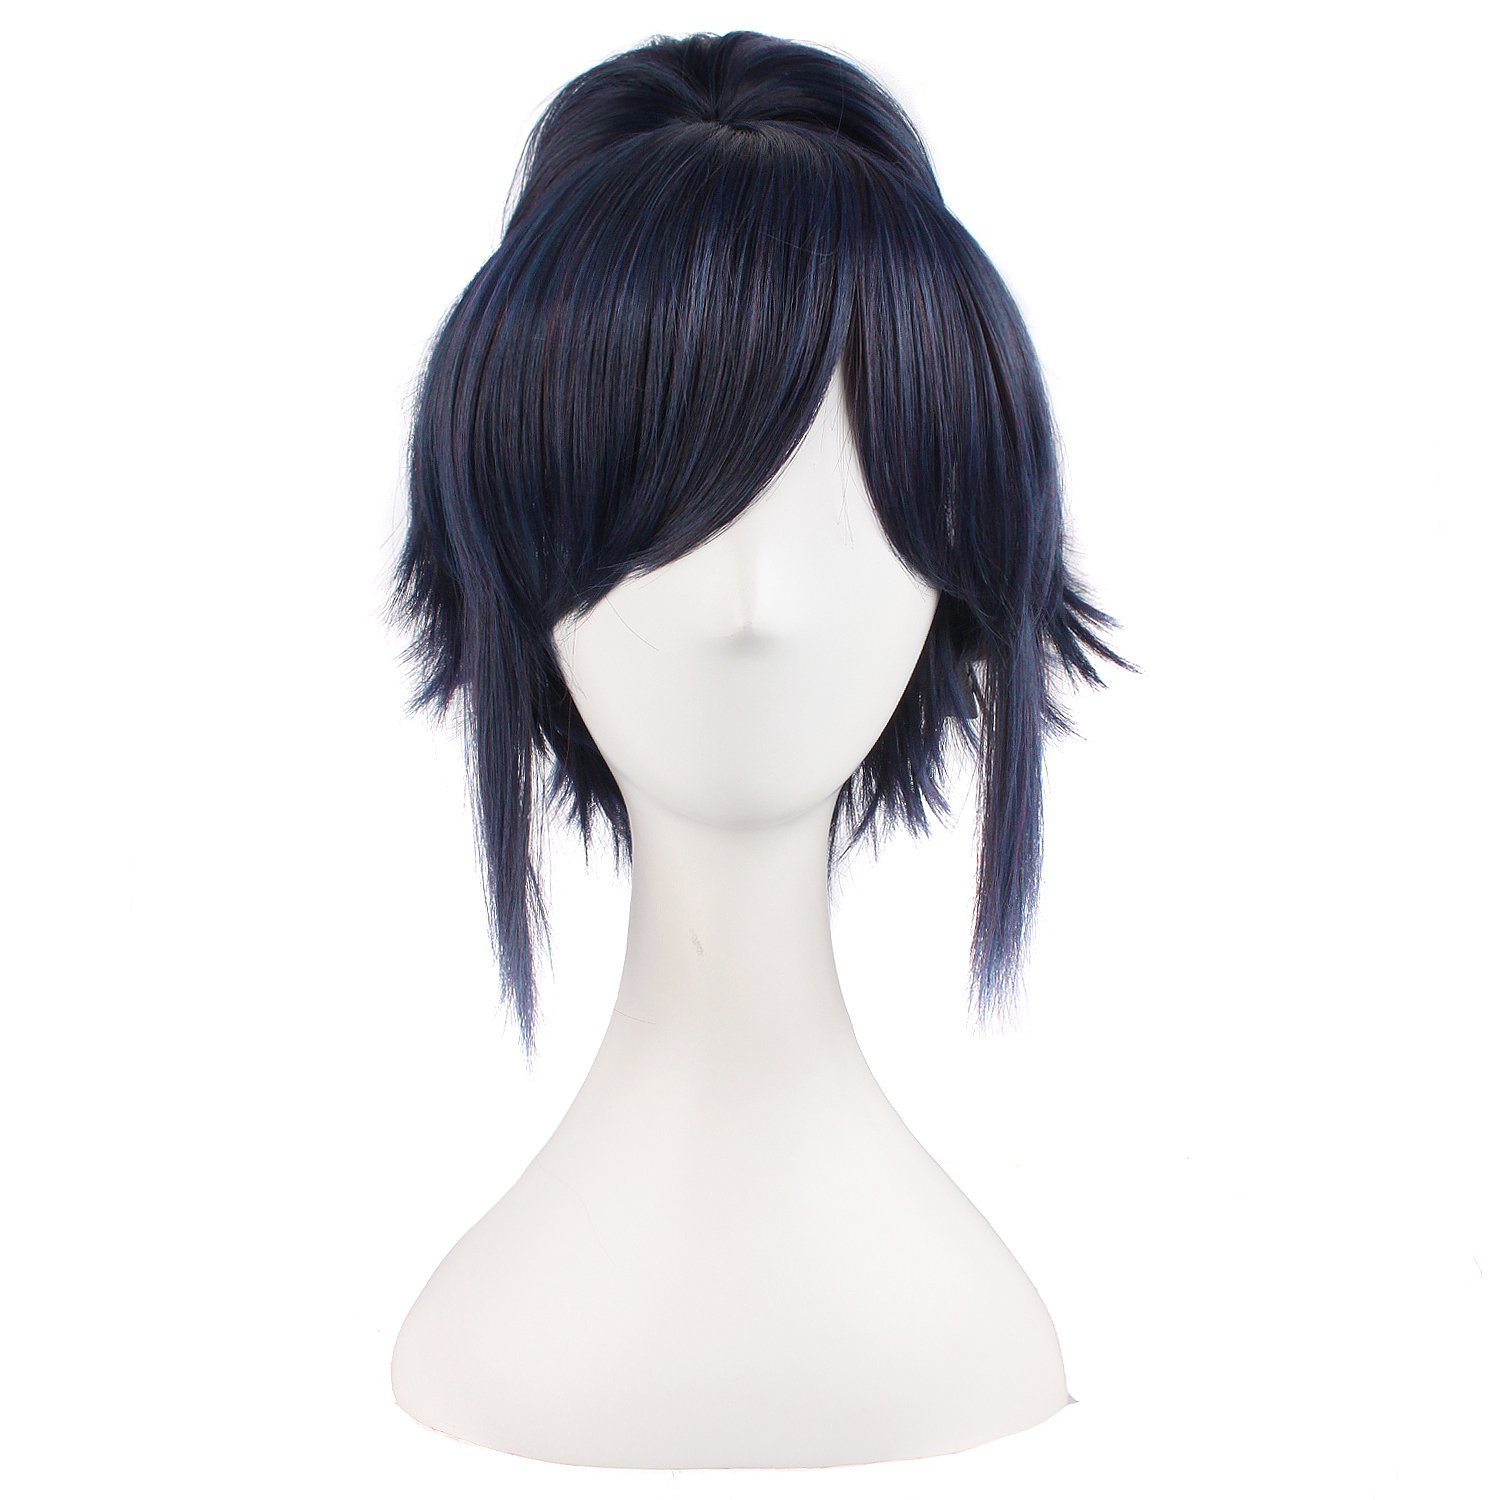 MapofBeauty 12''/30cm Ponytail Lovely Cosplay Hot Wig (Black Blue)